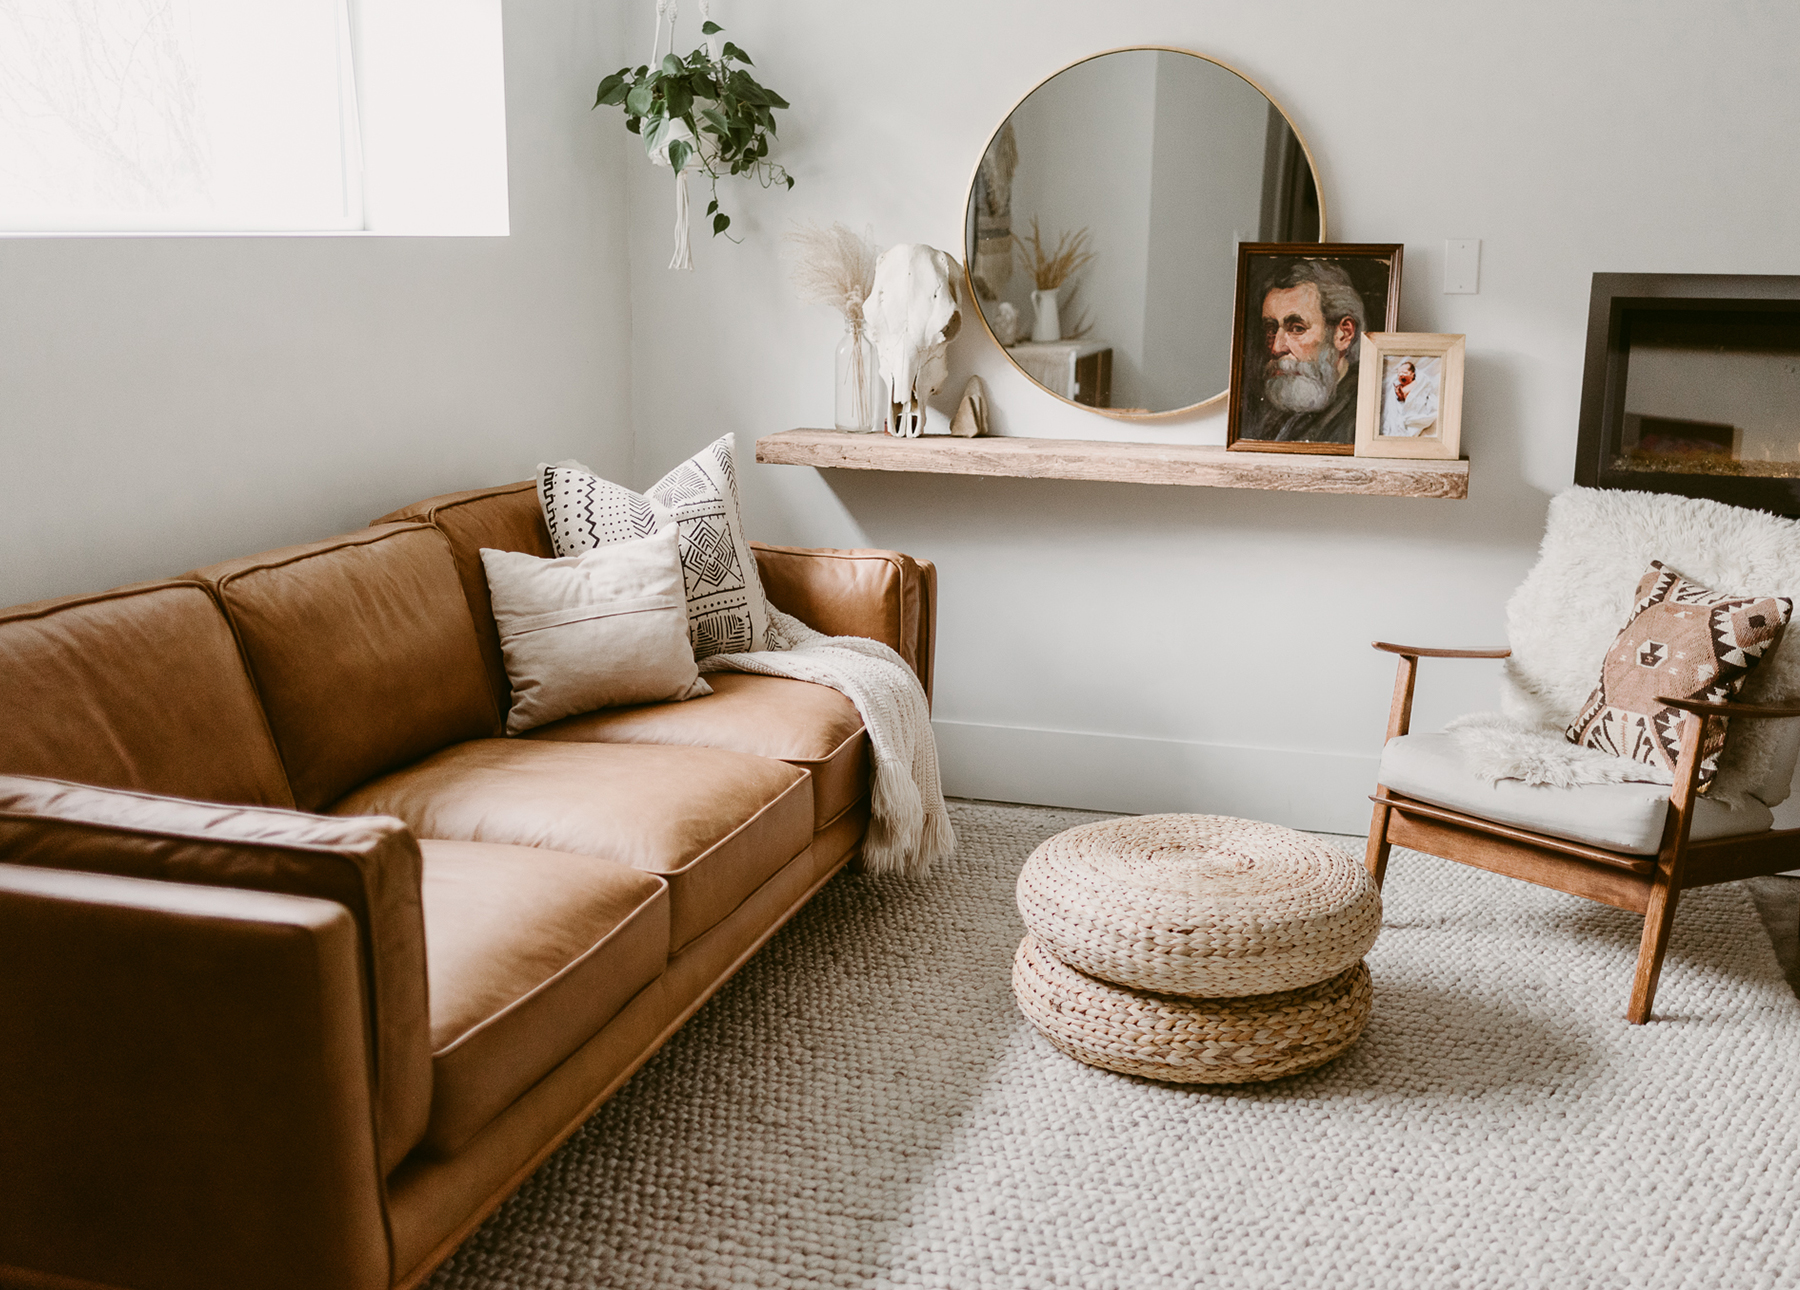 Emily Faith's living room features the tan Timber sofa